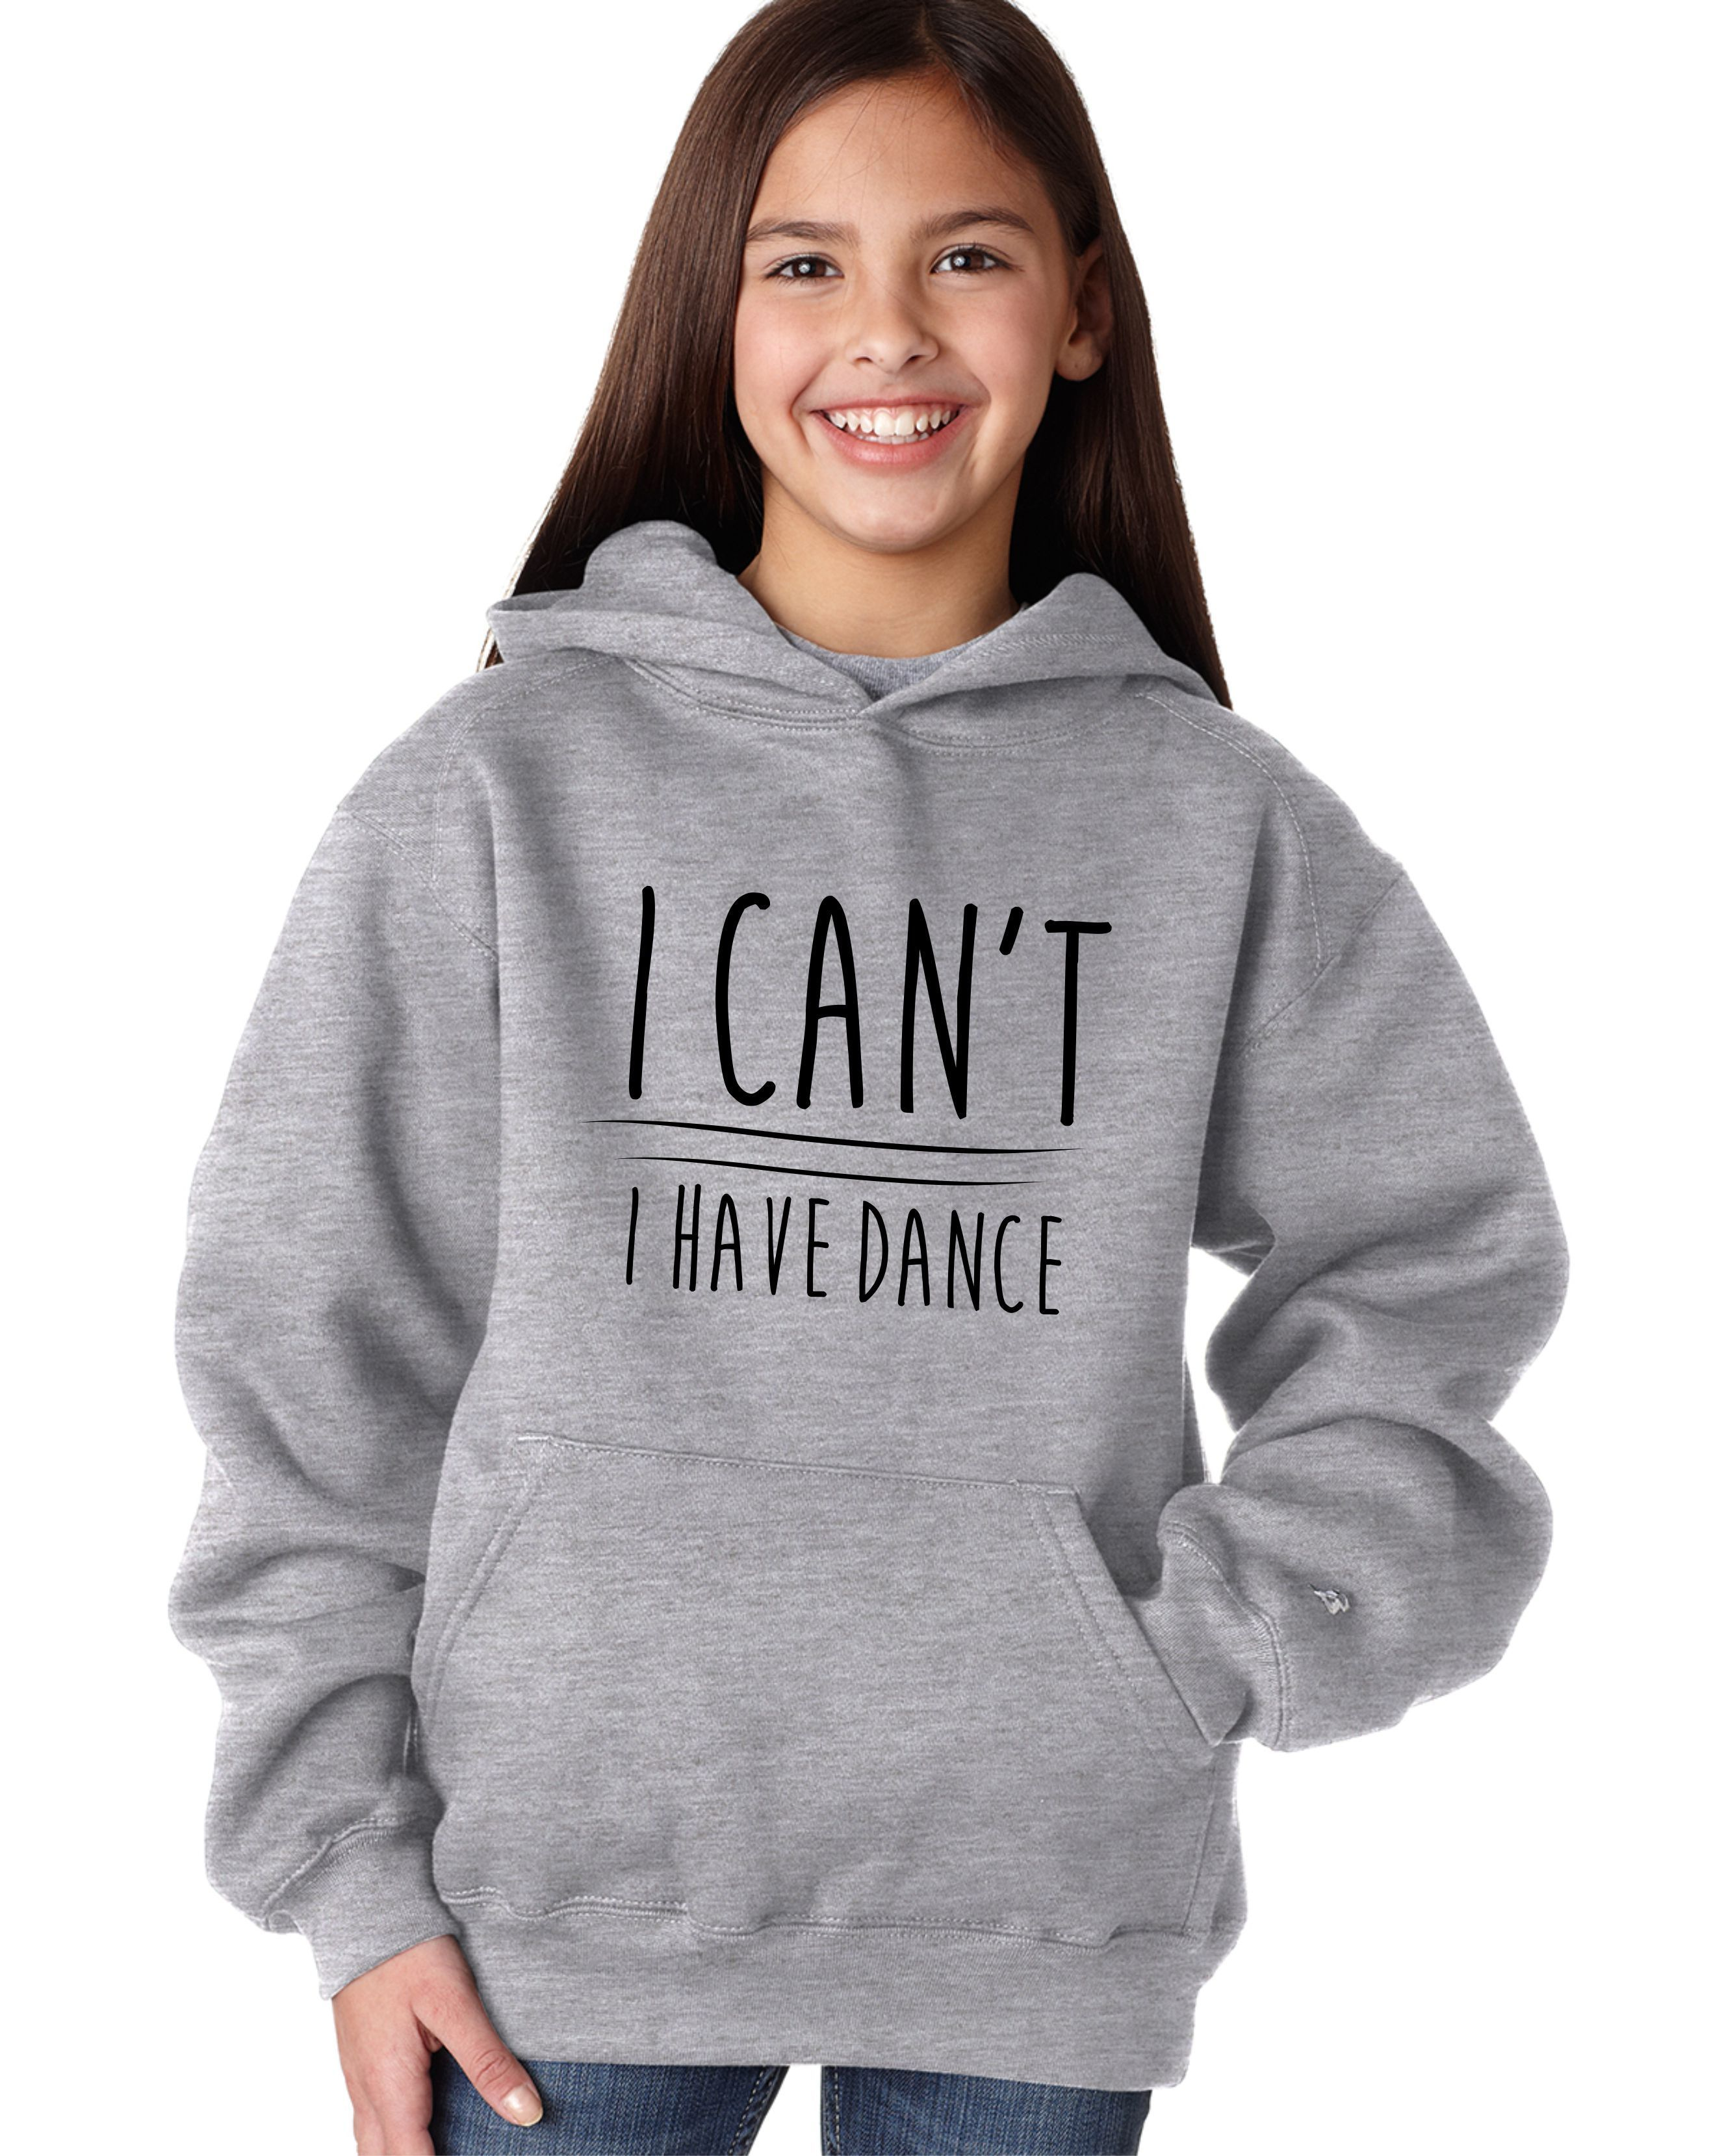 Dance Hoodie   I Can't I Have Dance  is part of Dance Clothes Sweatshirts - We are so excited to offer our popular  I can't I have dance  shirt in a hooded sweatshirt! This dance sweatshirt is perfect to wear over dance clothes to dance class or for everyday wear  Hooded sweatshirt is available in heather gray or black  Soft polycotton blend  Youth sizes do not have hood strings while adult sizes do